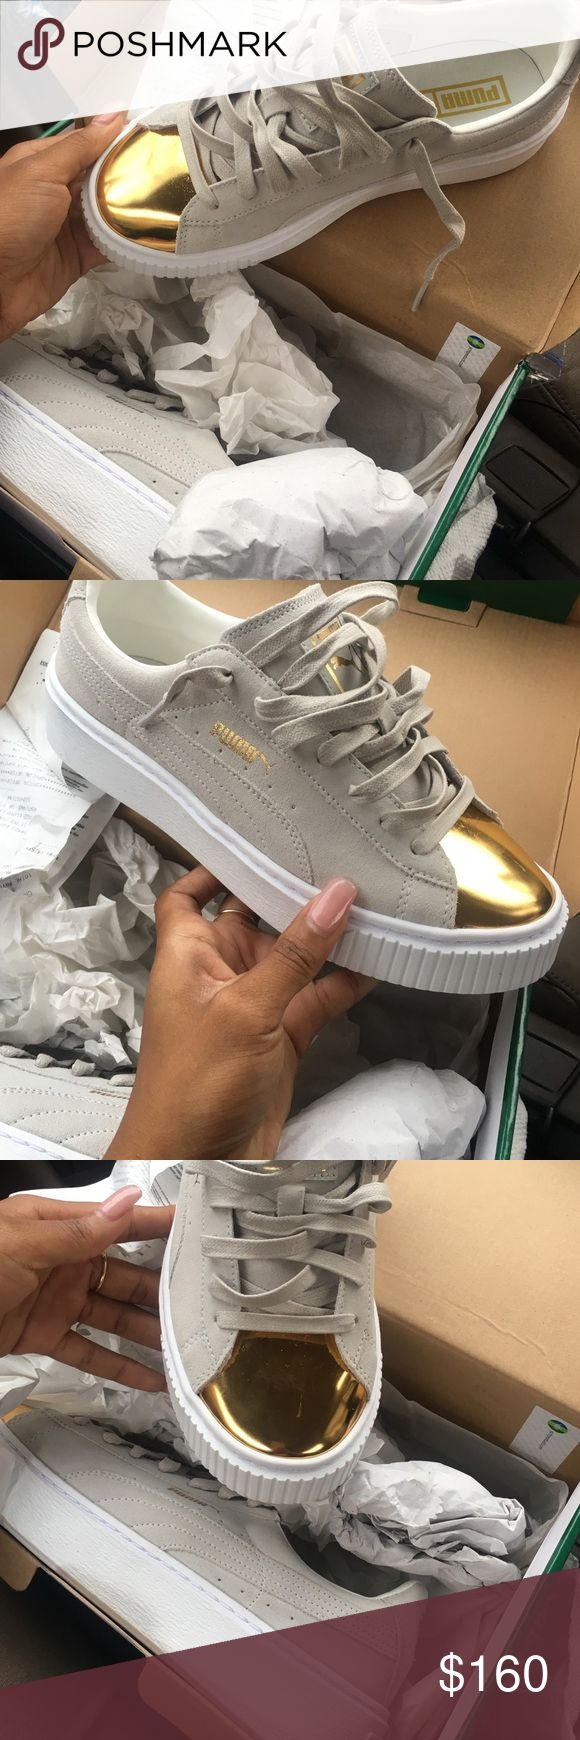 Brand new Puma Suede platform gold top Brand new never worn pumas. Not Rihanna  creepers but real pumas! Very cute shoe, no trades please! Puma Shoes Sneakers